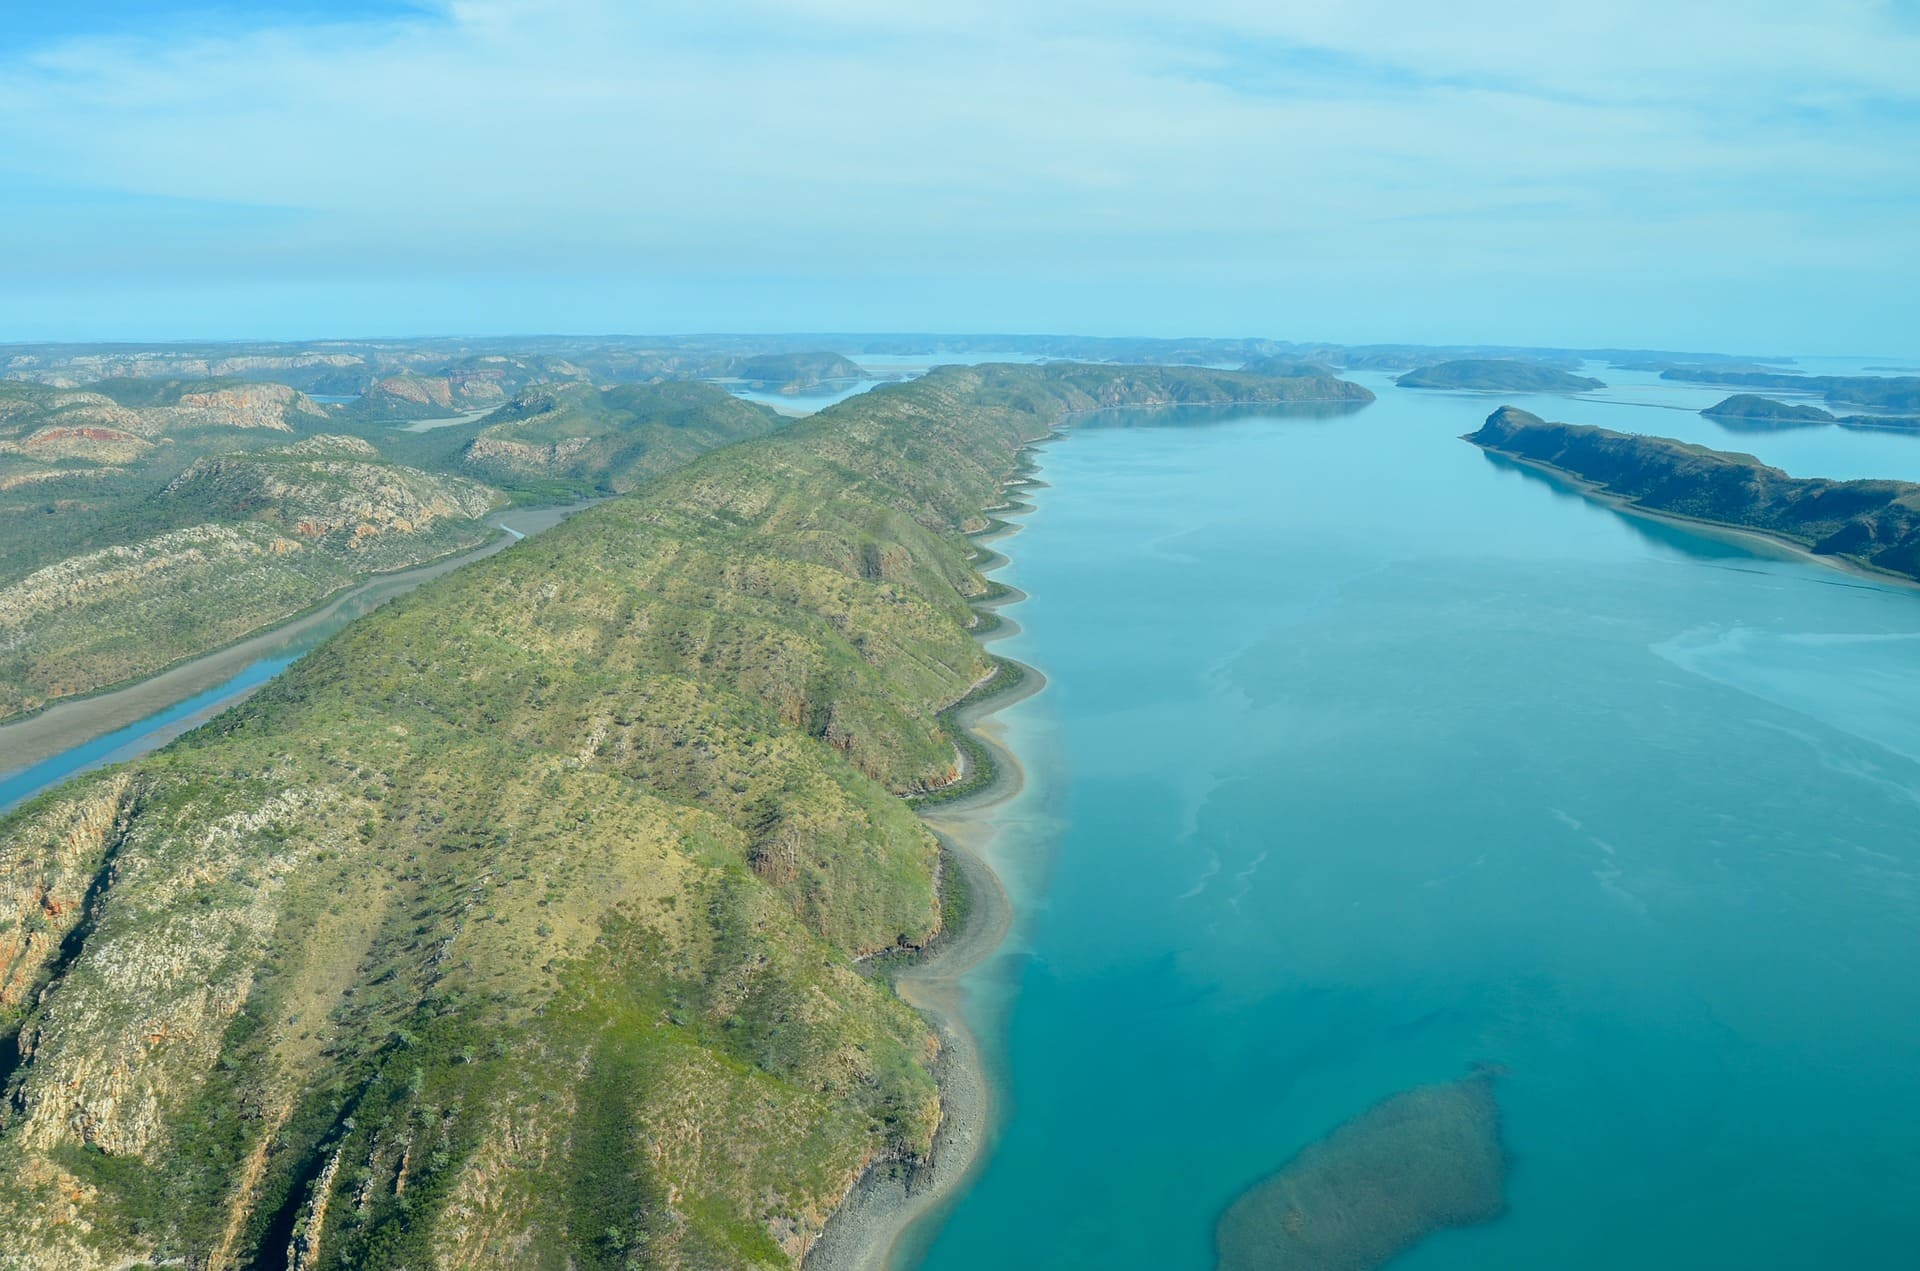 A helicopter view of the Buccaneer Archipelago in the Kimberley region, Western Australia